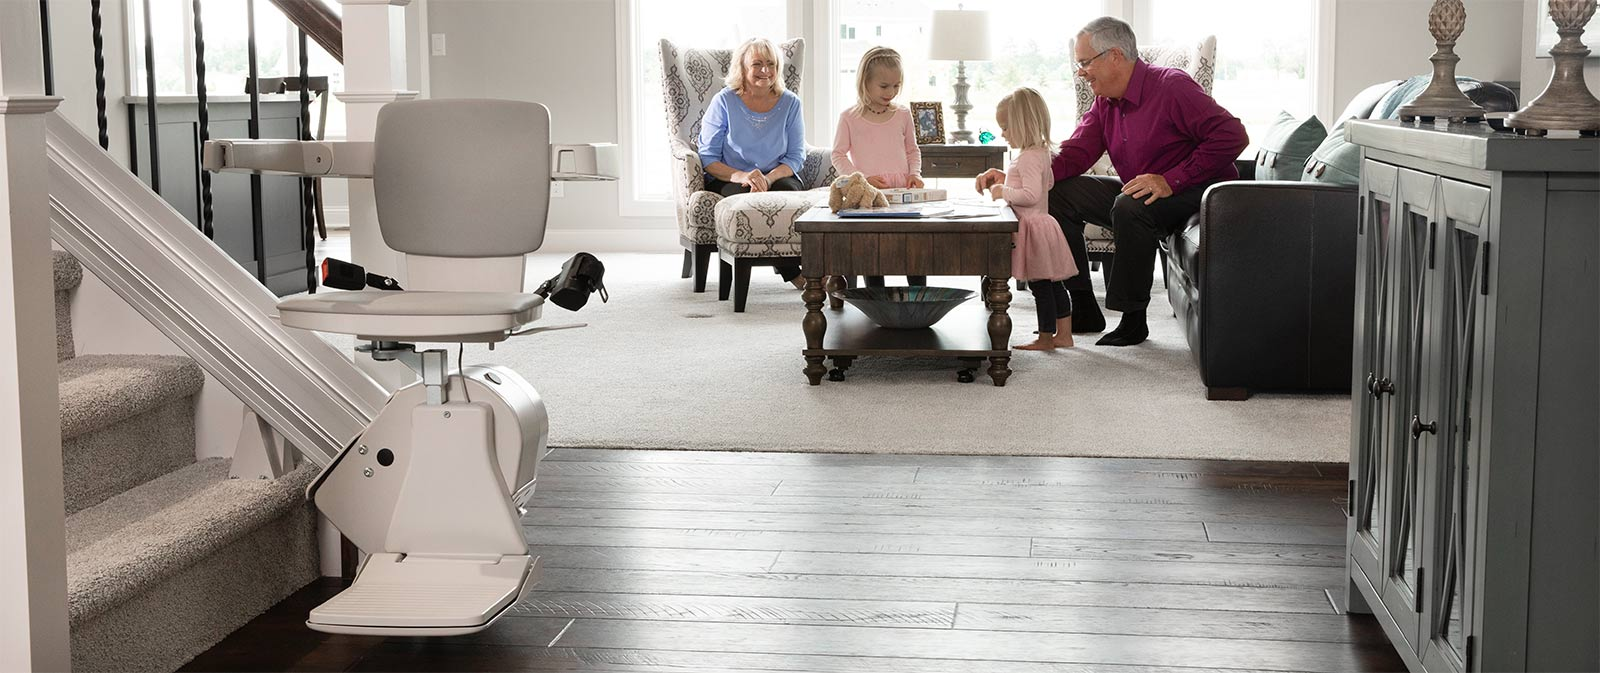 stair lift at the bottom of stairs with senior couple with children in background on the couch smiling